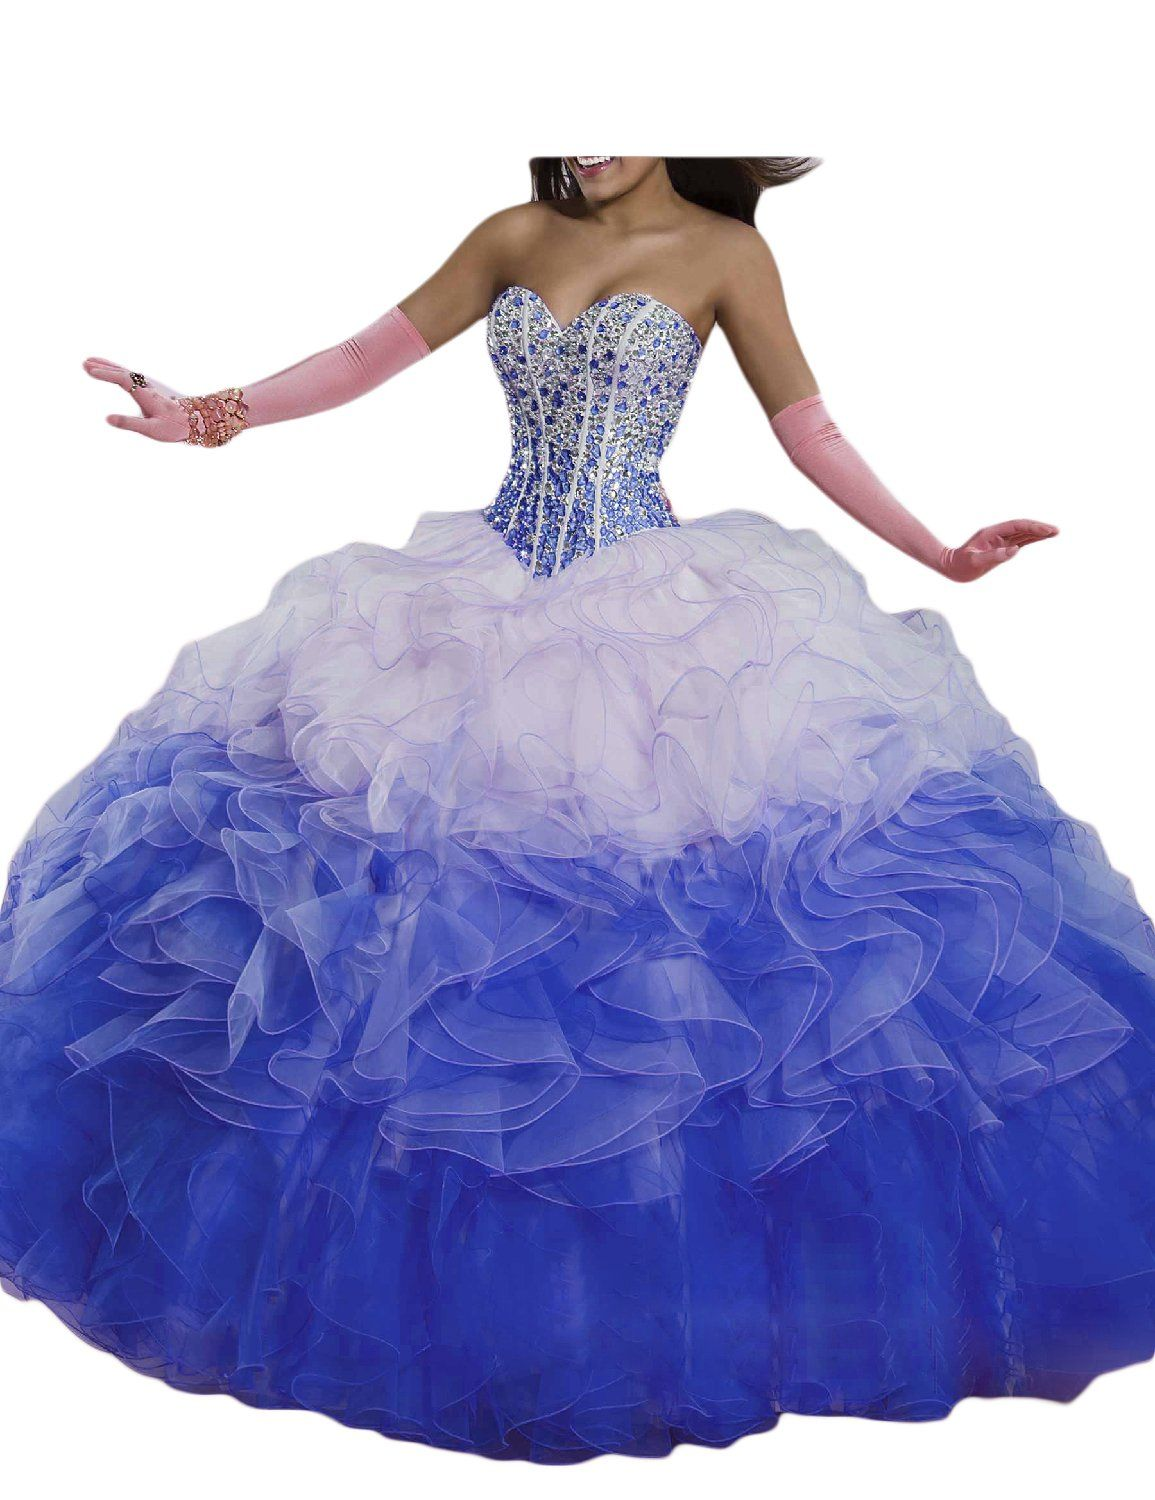 Oyisha womens strapless bodice ombre ball gown prom quinceanera